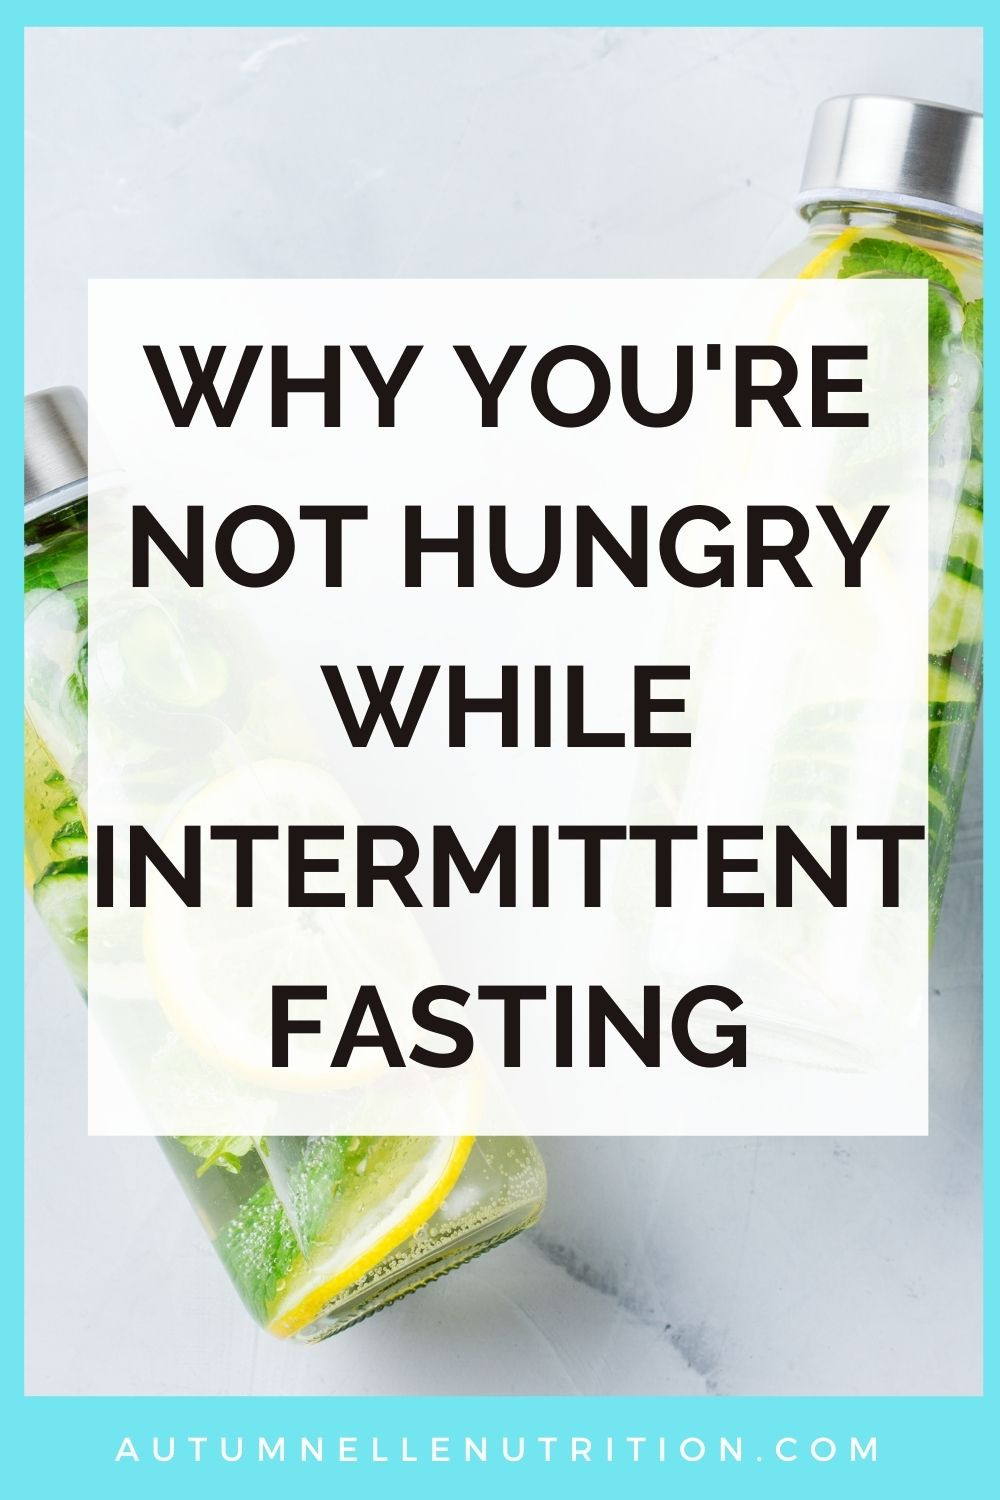 Why Am I Not Hungry During Intermittent Fasting?